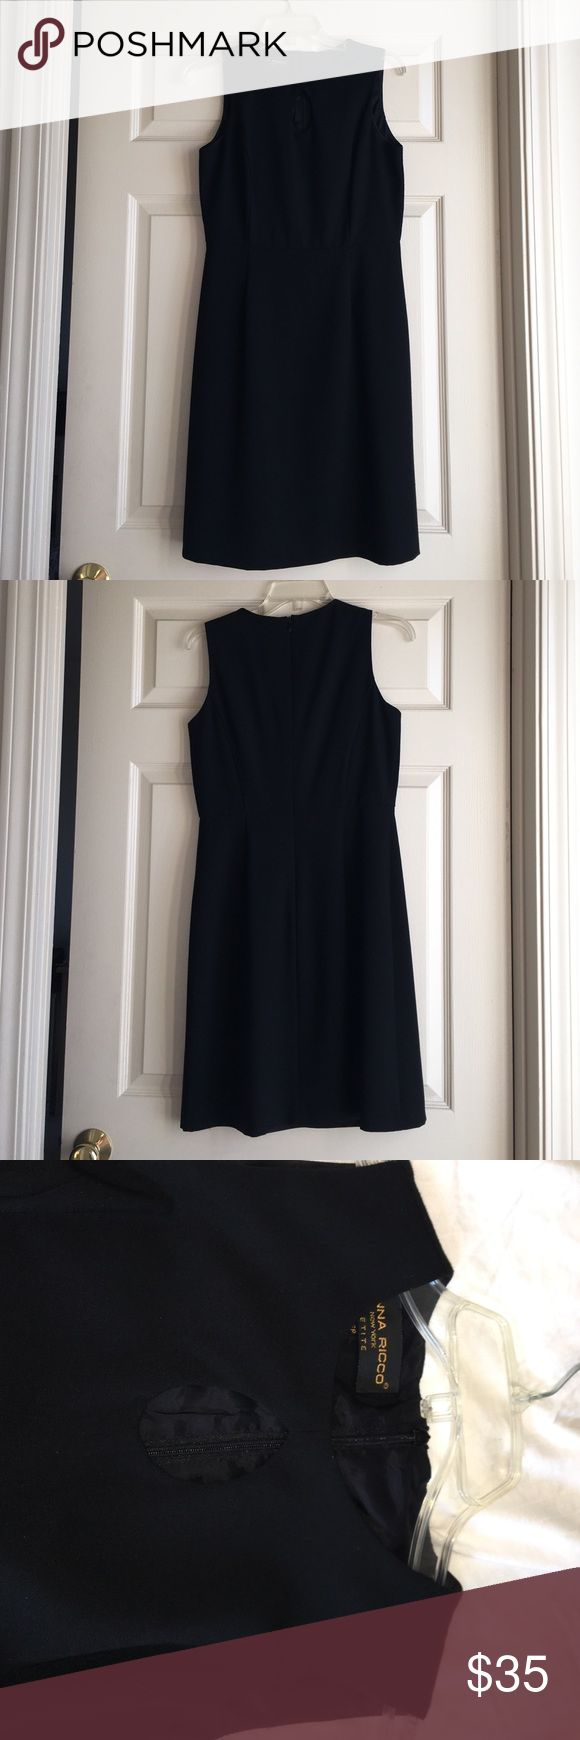 Donna Ricco keyhole Black Cocktail Dress Very classy Donna Ricco Black, Keyhole, fully lined Cocktail Dress. Donna Ricco Dresses Midi